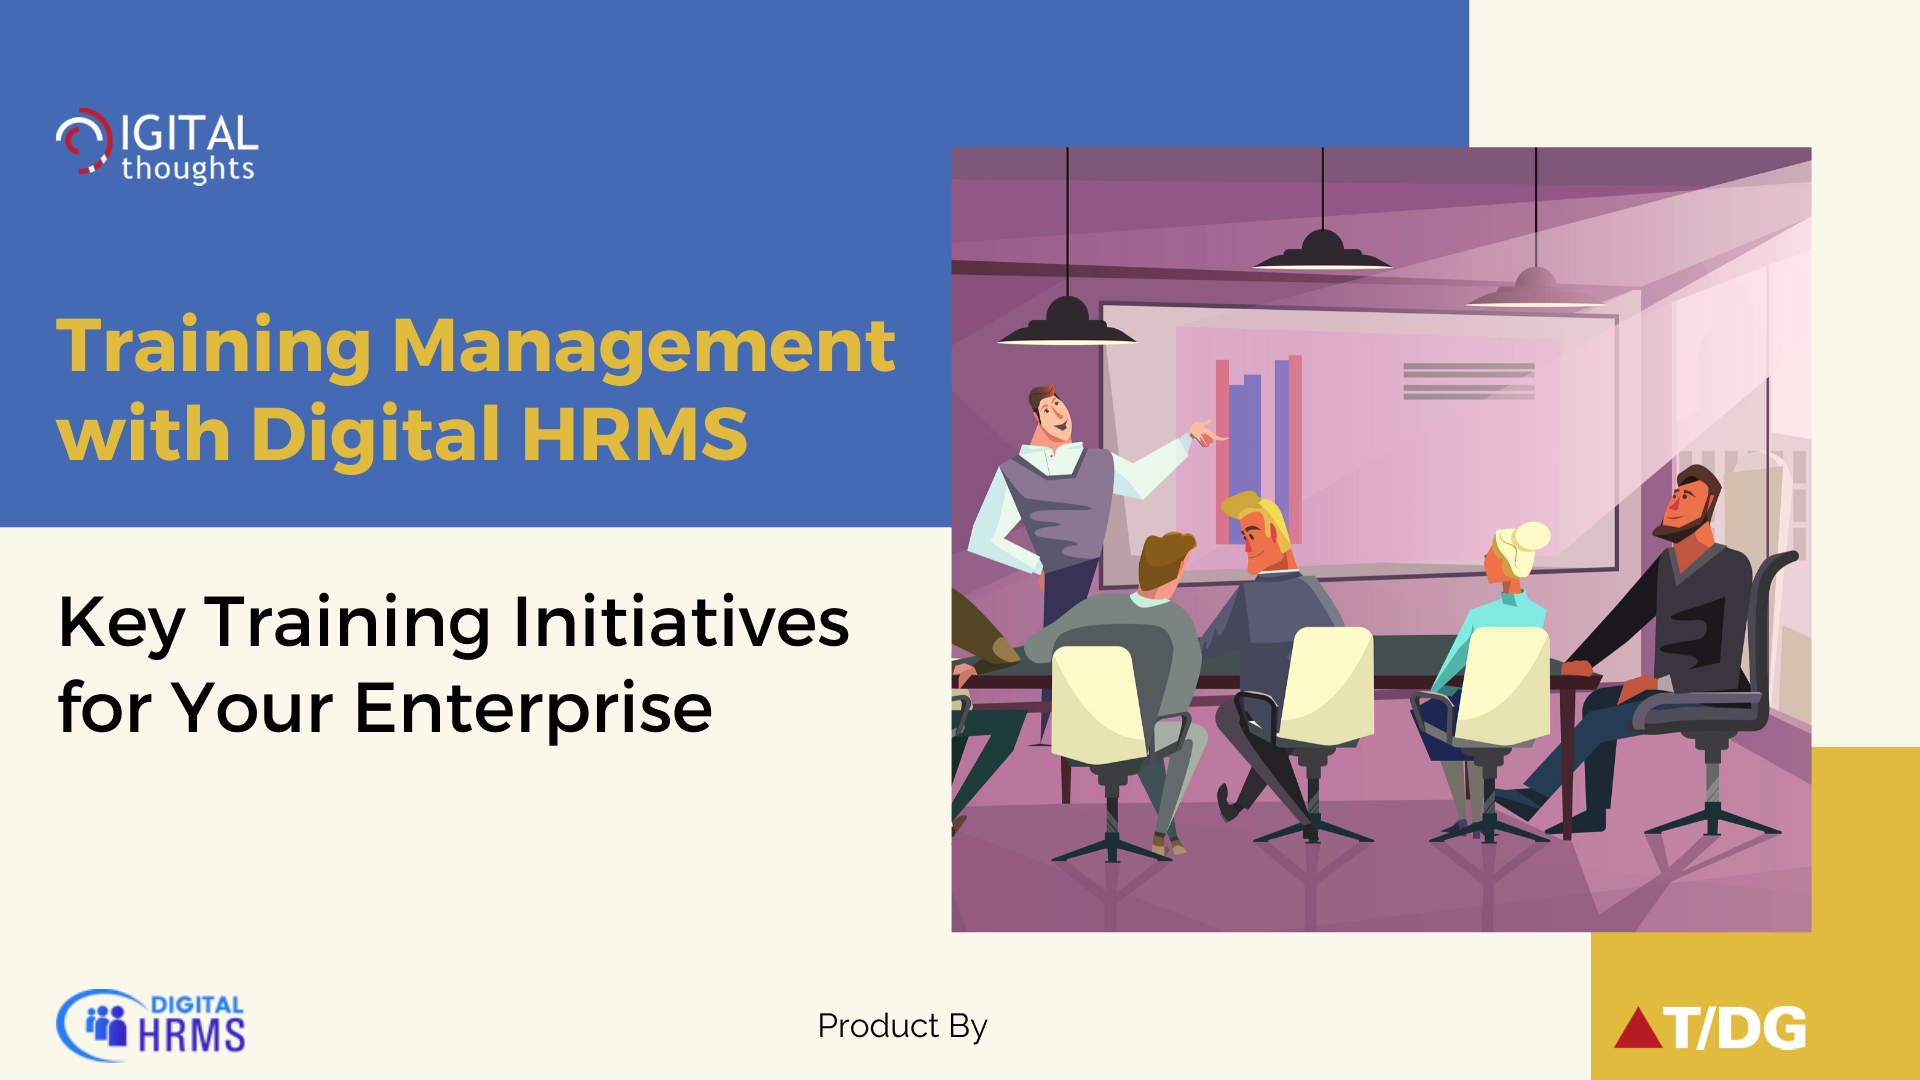 Training Management with Digital HRMS: Explore Key Training Initiatives for Your Enterprise